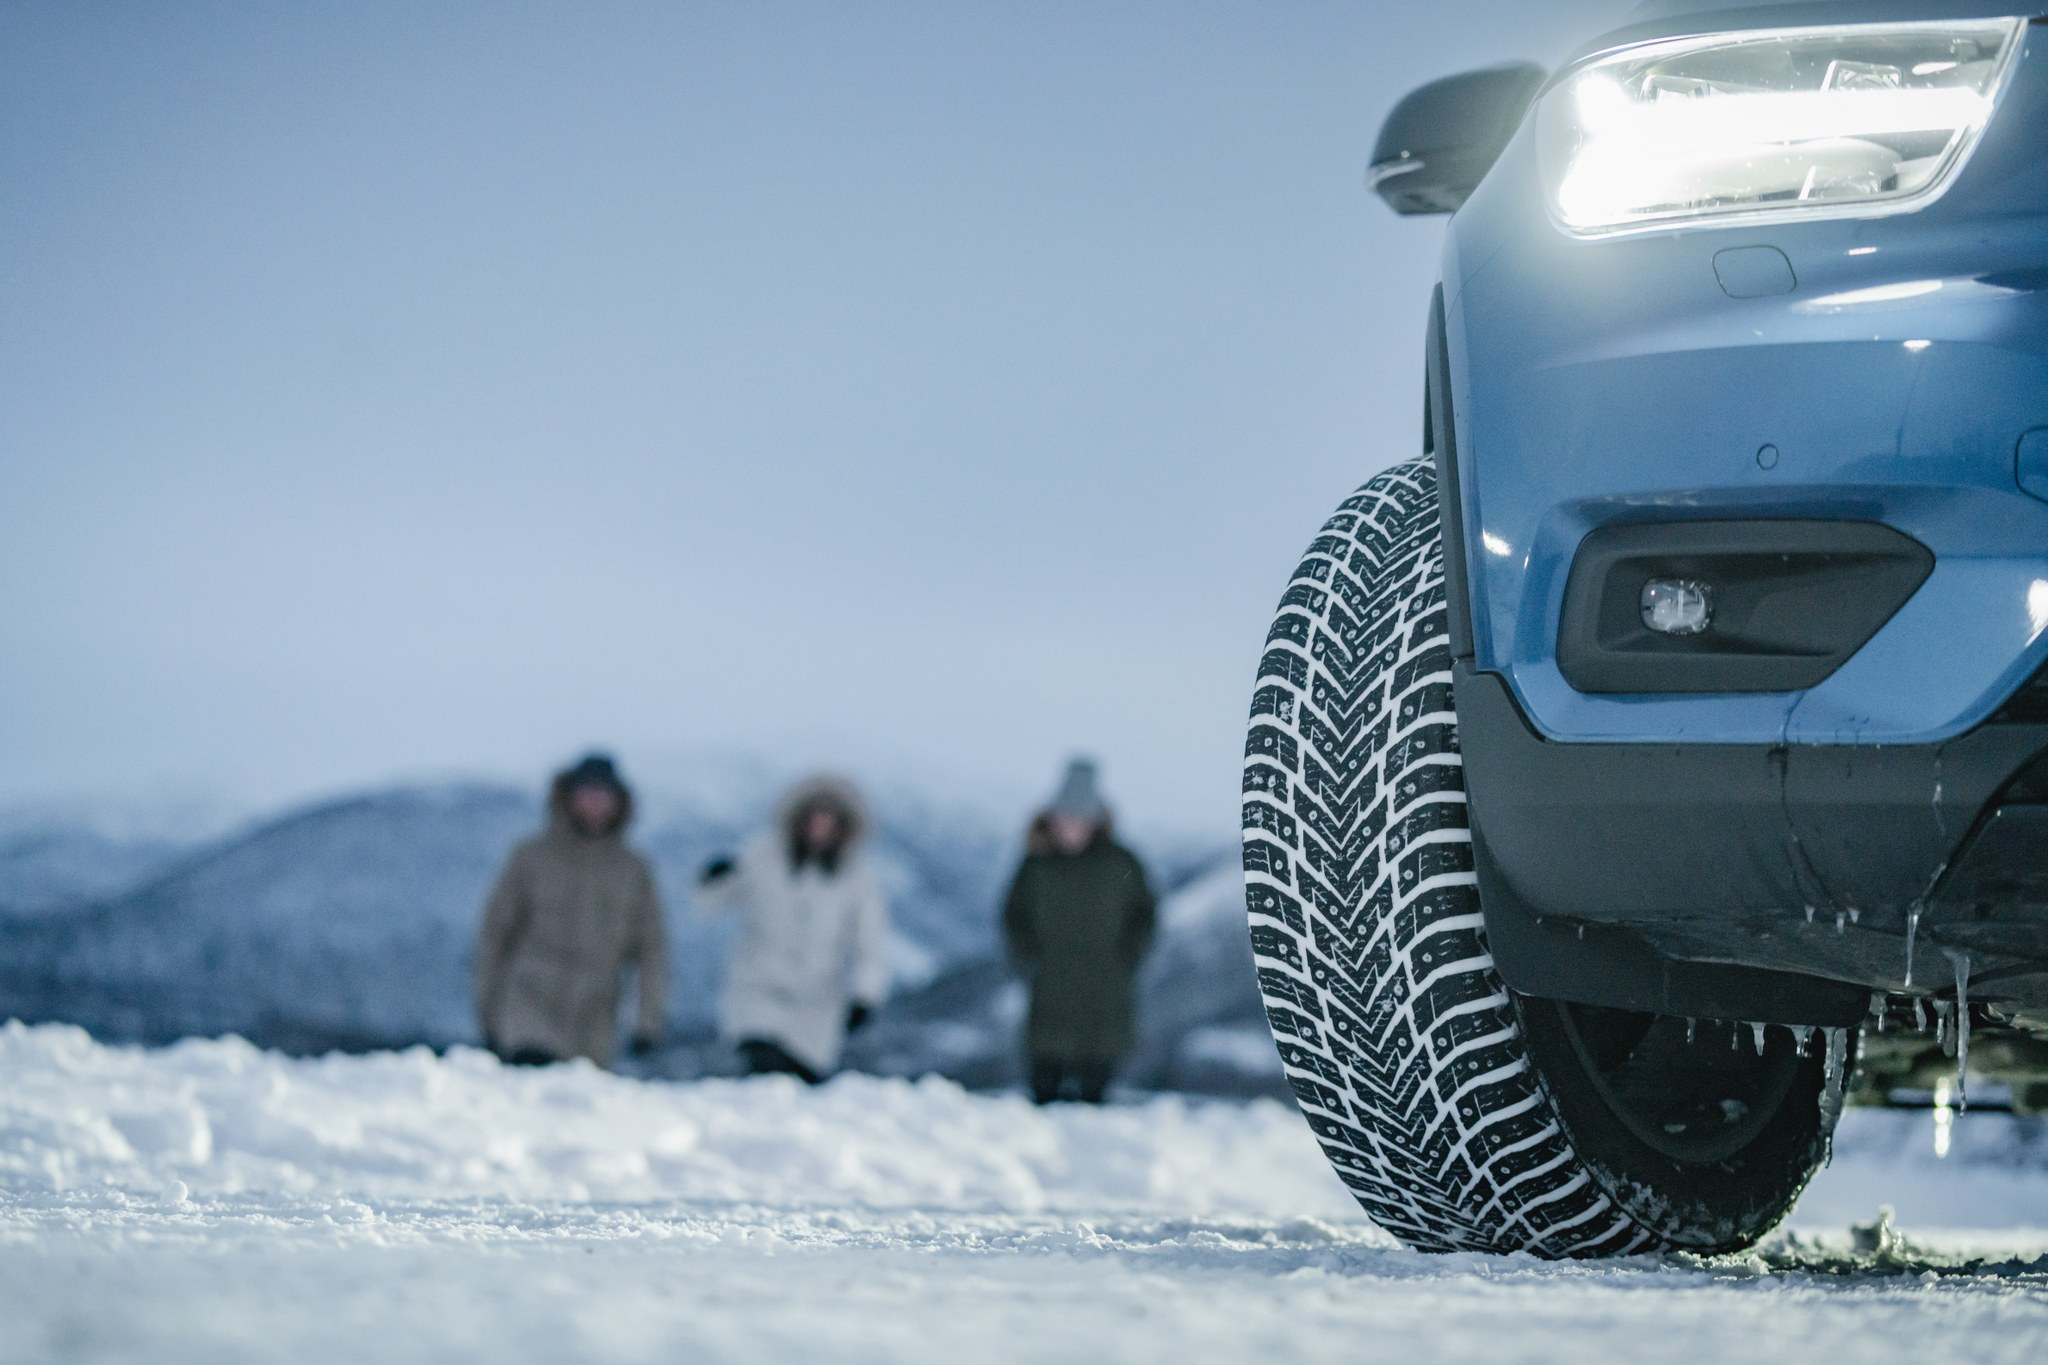 The Nokian Hakkapeliitta 10 delivers a 10/10 driving experience in extreme winter conditions